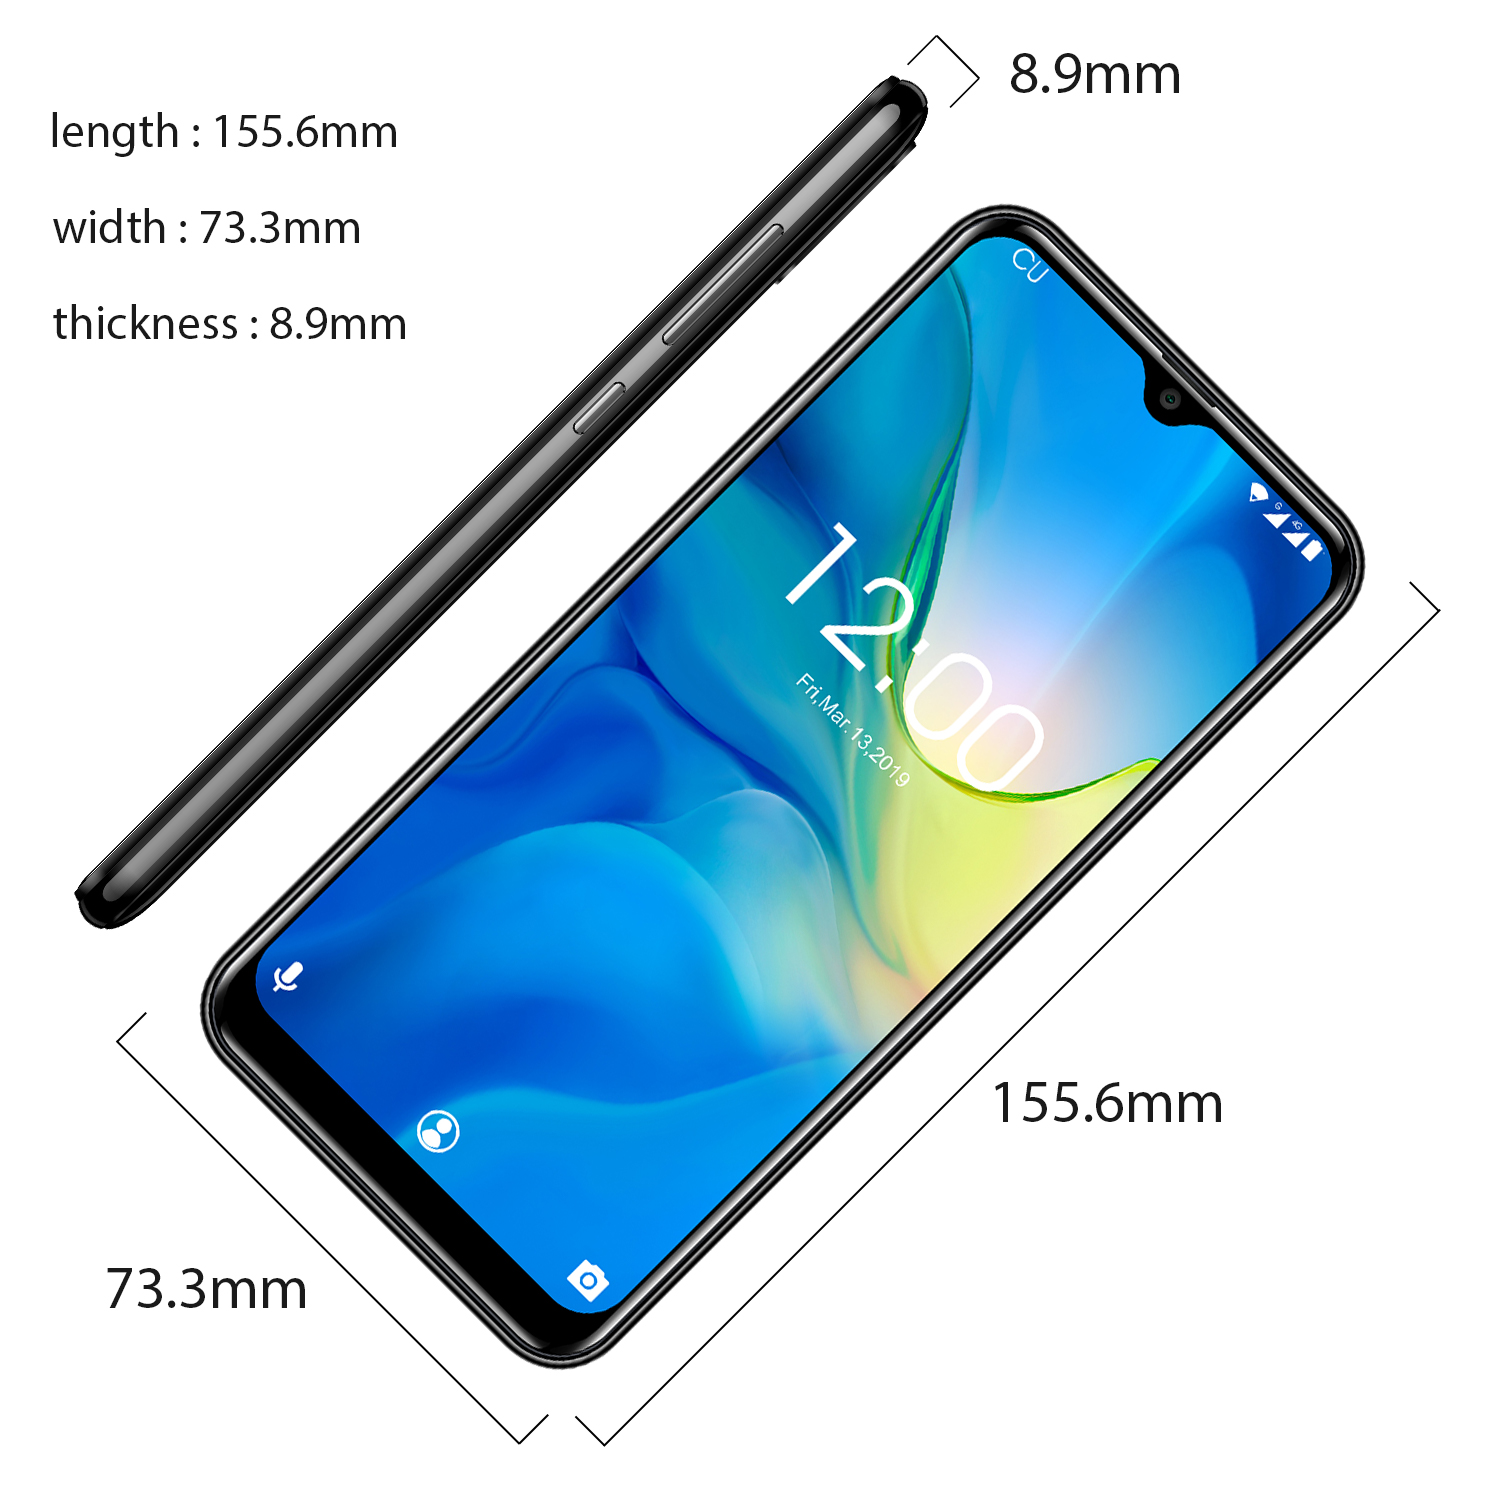 Image 4 - OUKITEL C15 Pro+ 6.088 4G Smartphone 3GB 32GB MT6761 Water Drop Screen 2.4G/5G WiFi Mobile Phone C15 Pro + Fingerprint Face ID-in Cellphones from Cellphones & Telecommunications